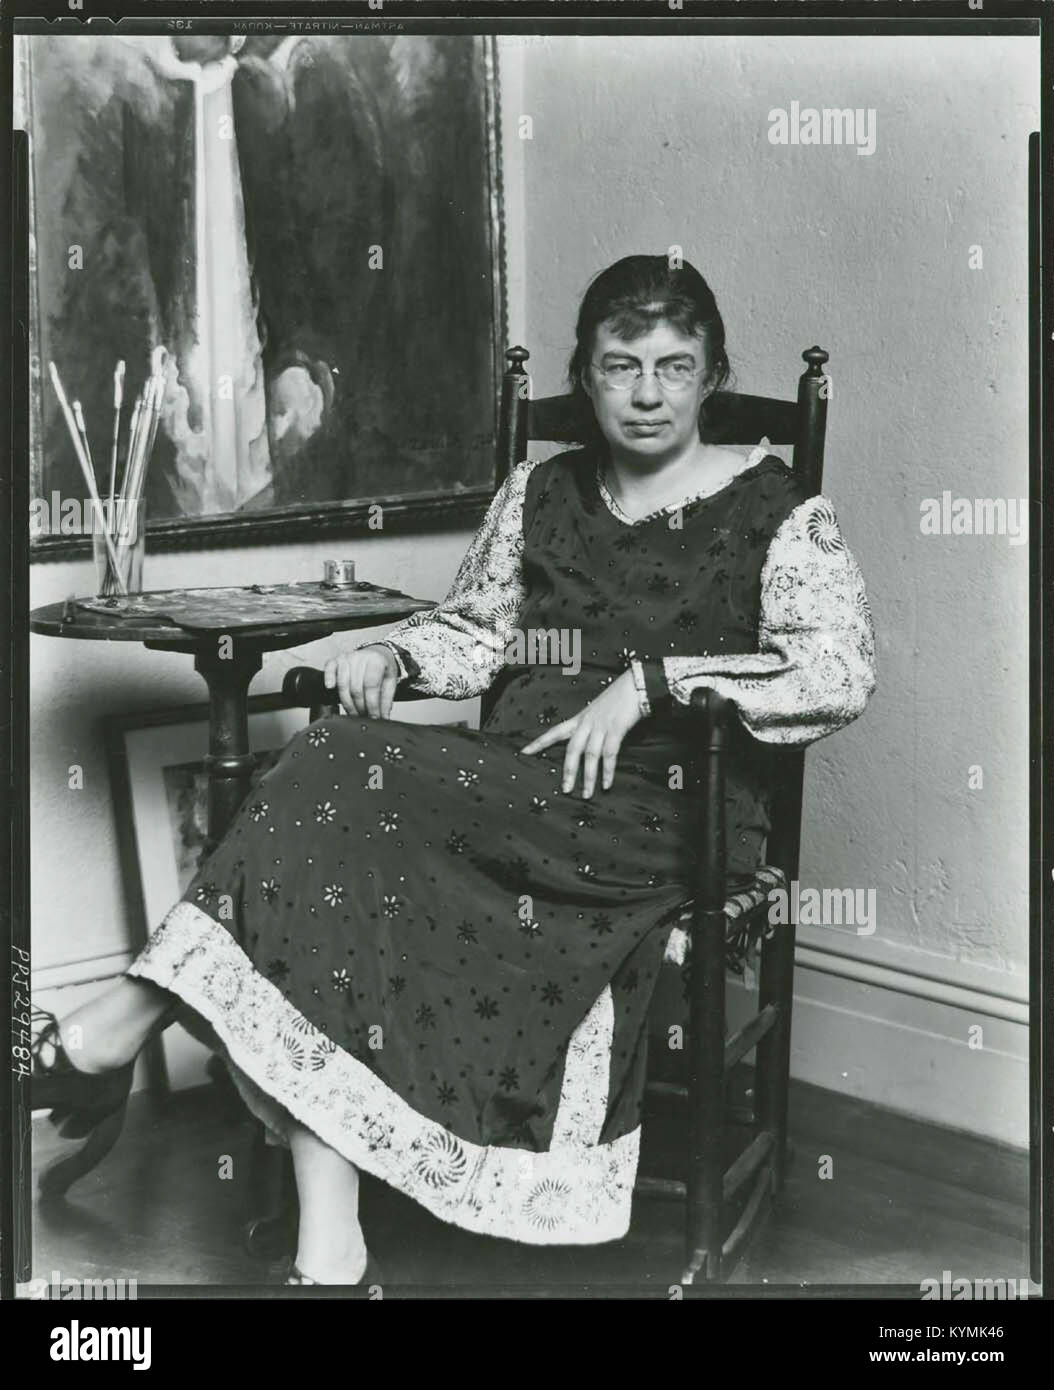 Marguerite Zorach, American painter and printmaker, 1887-1968, in her studio 3378177975 o - Stock Image